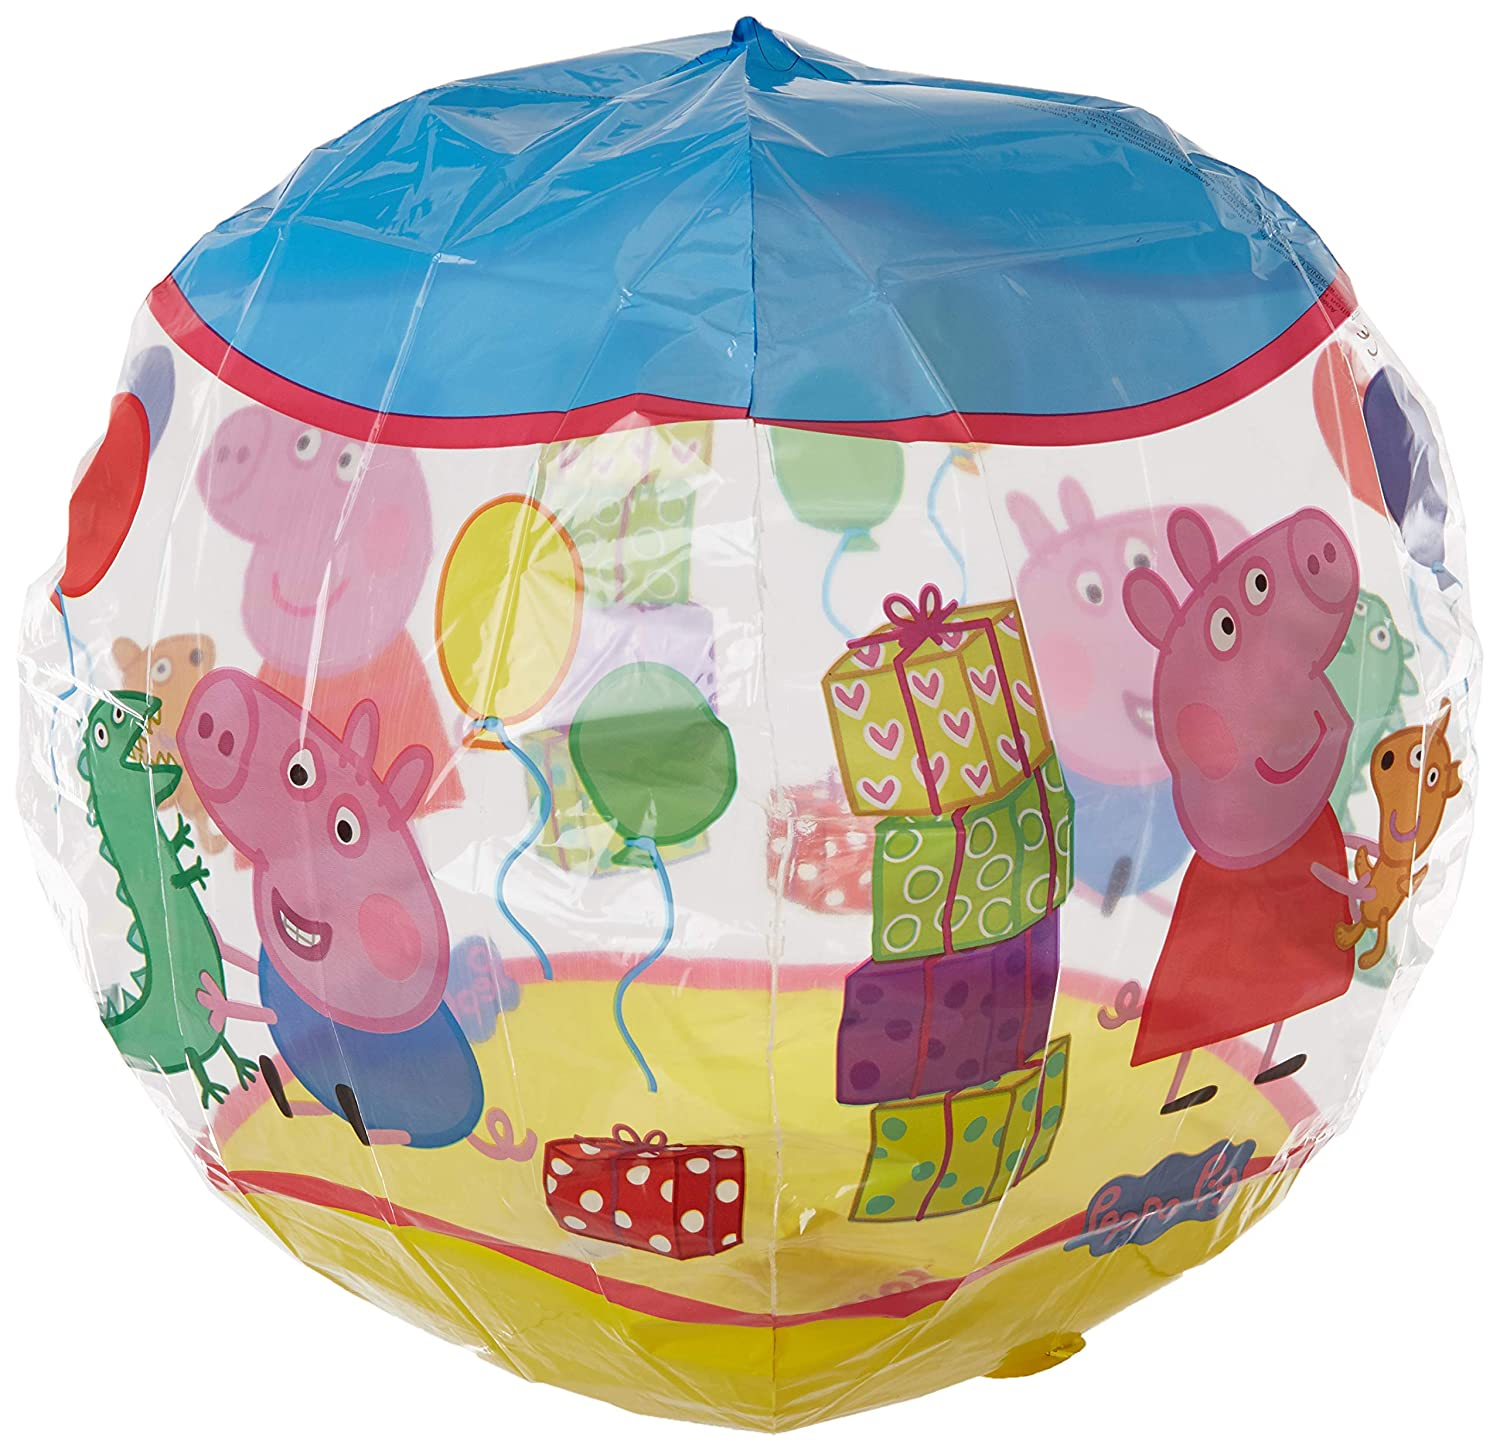 Anagram International 3126101 Peppa Pig Orbz Party Balloon 16' Multicolor